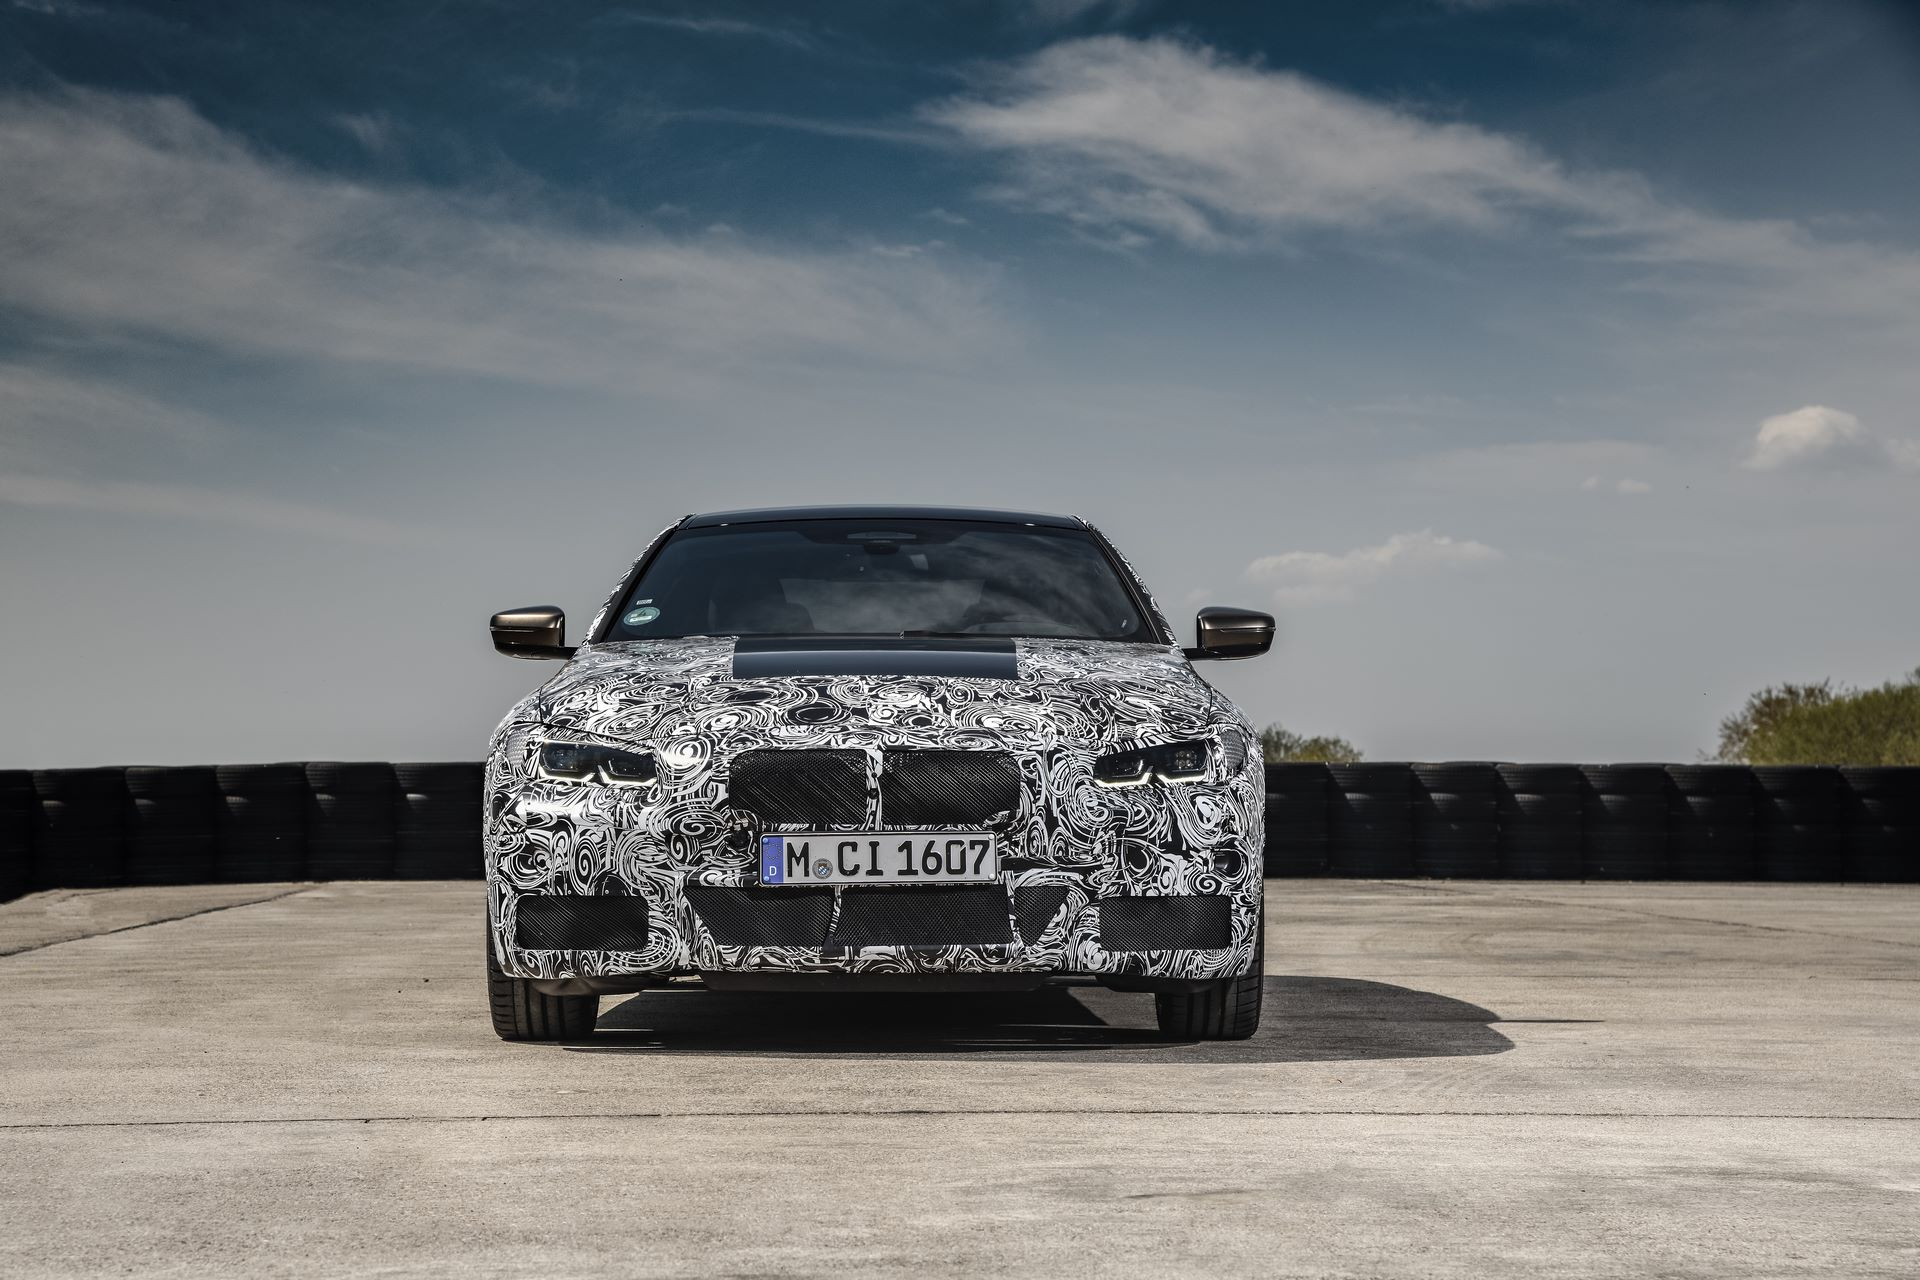 BMW-4-Series-M440i-camouflaged-22